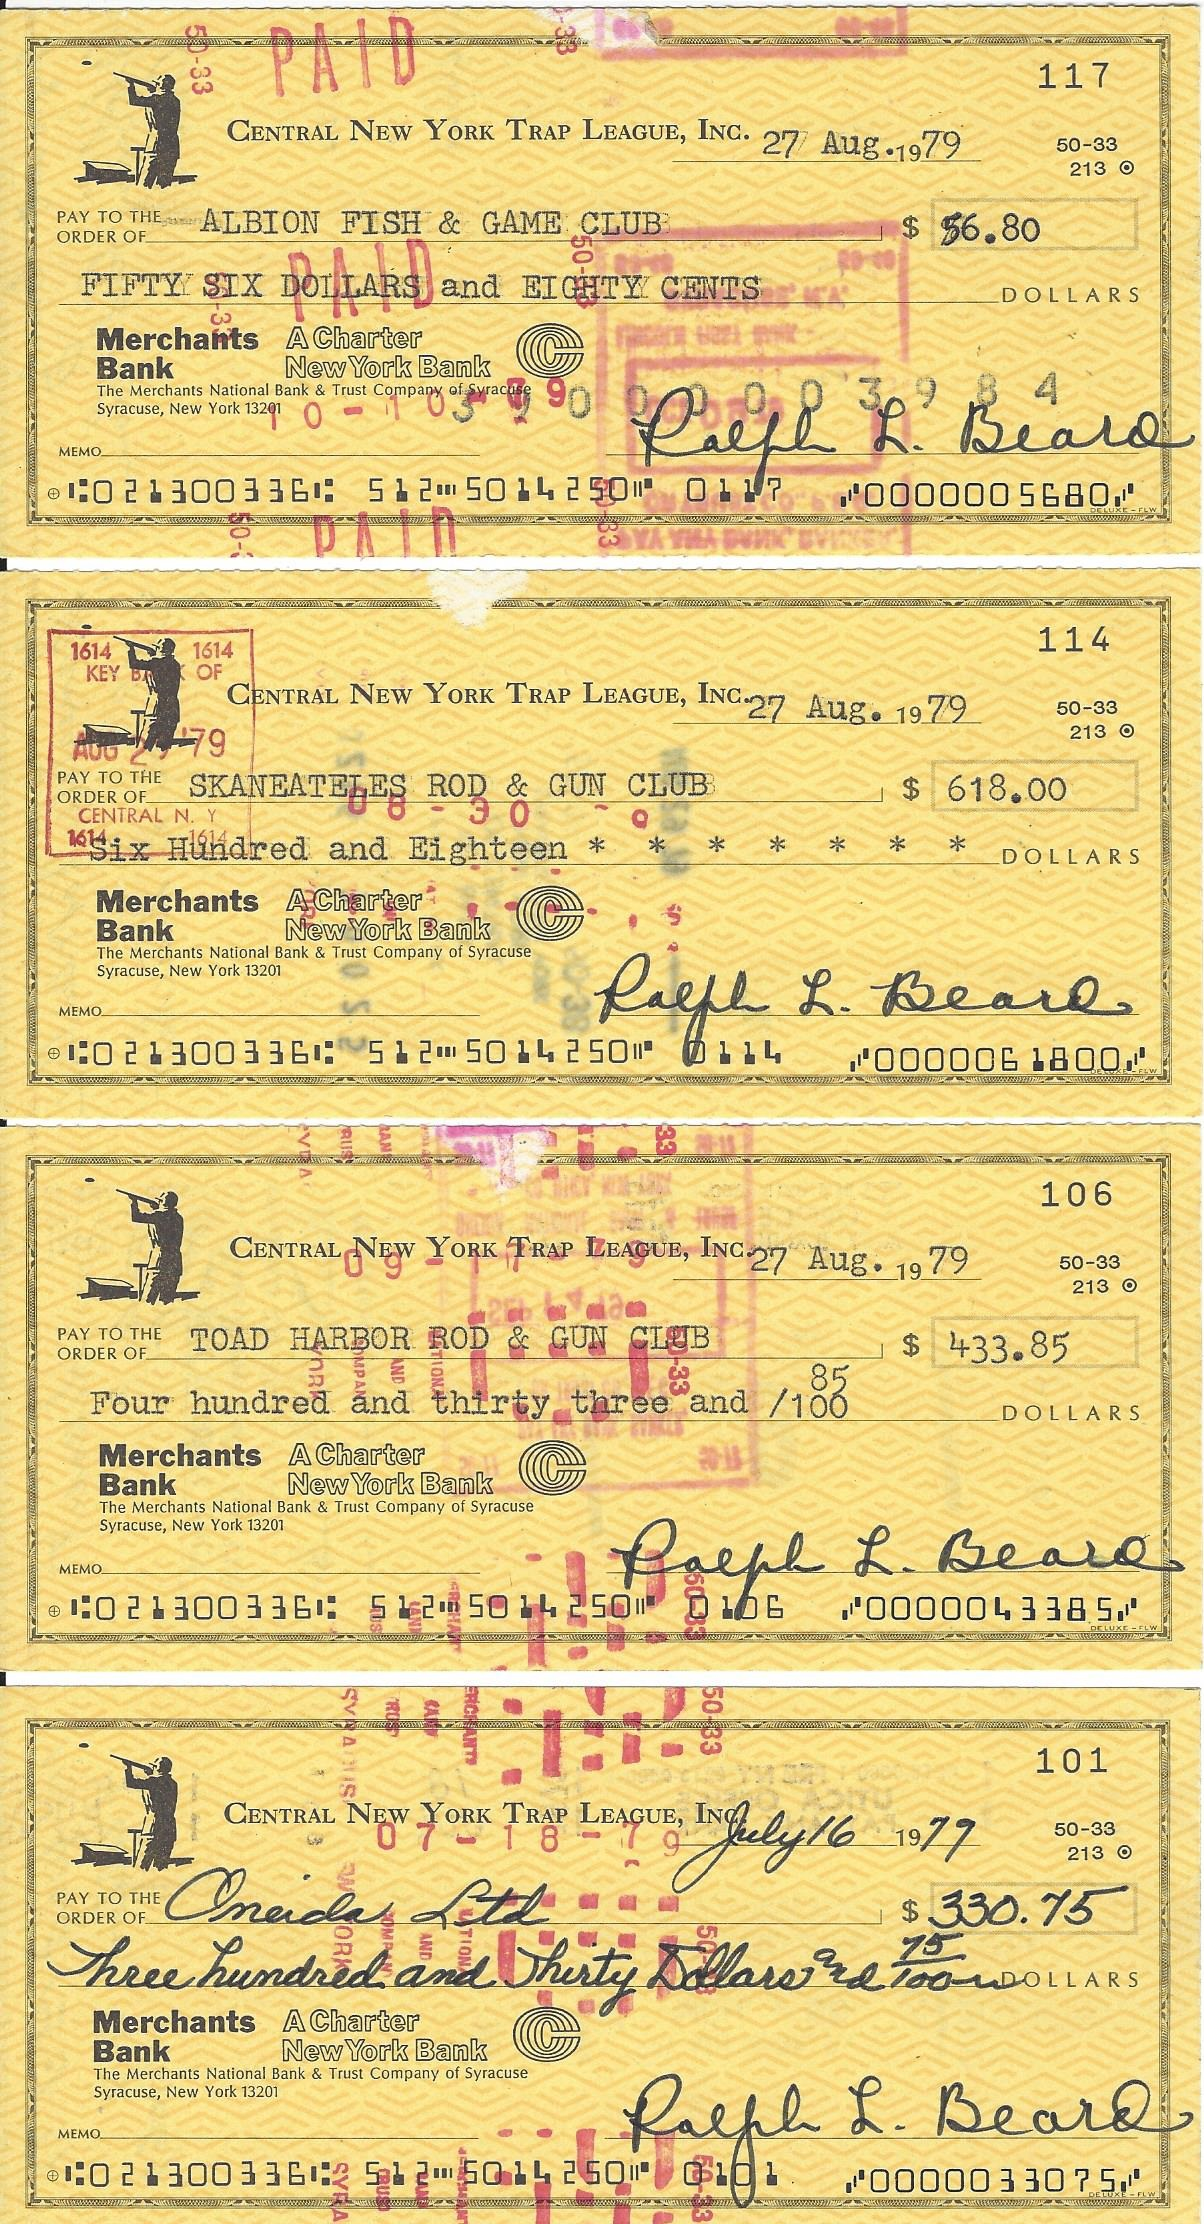 CNYTL 1979 CHECKS